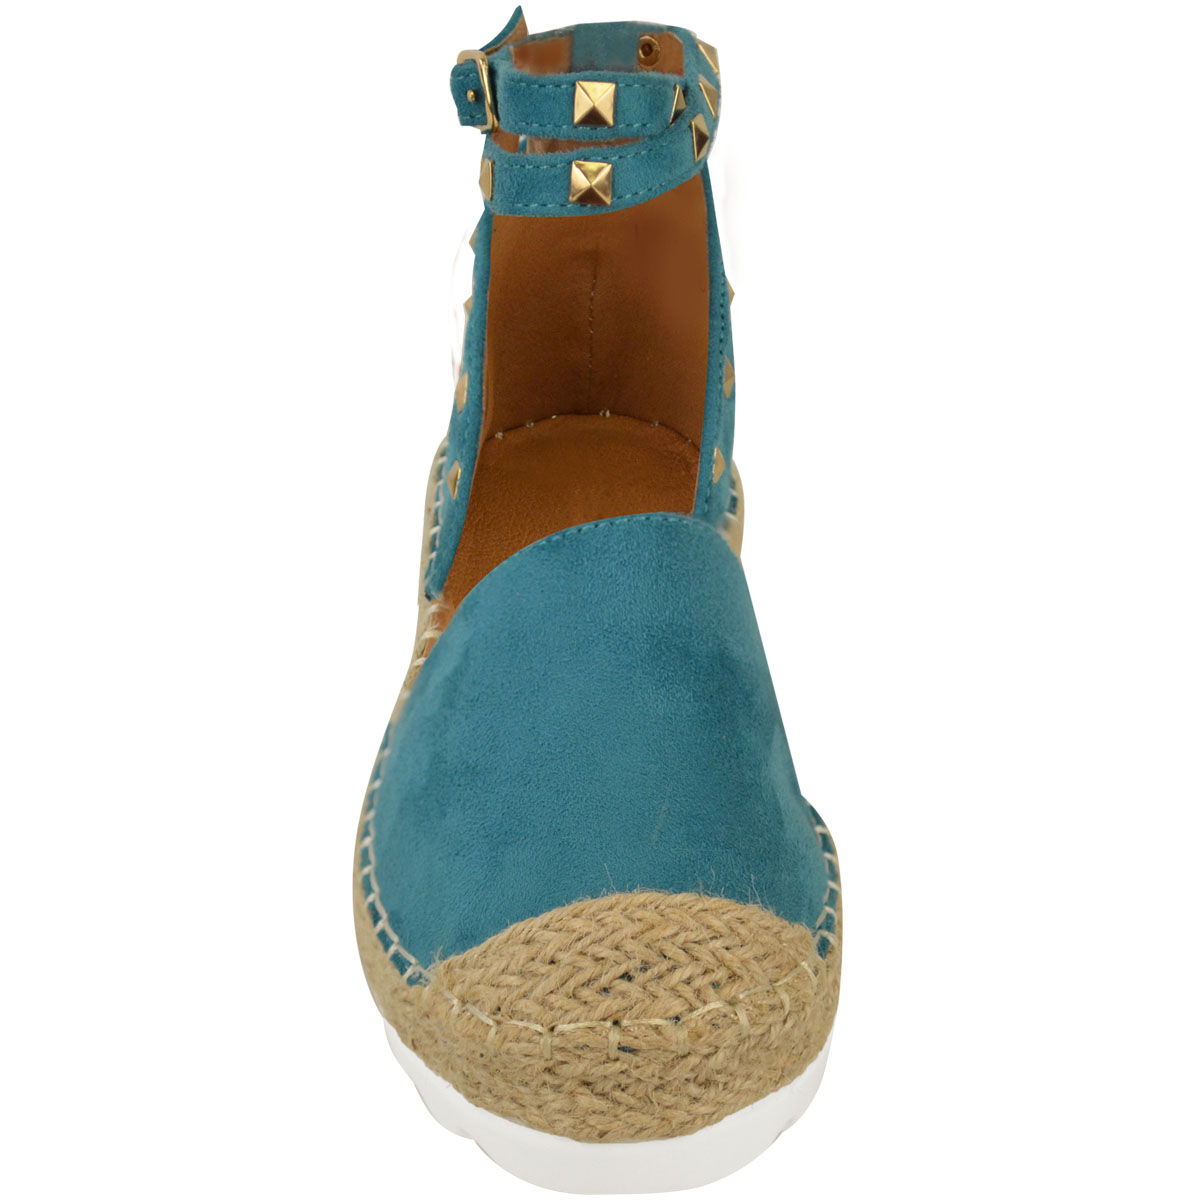 Womens-Ladies-Espadrilles-Flat-Pom-Pom-Sandals-Slip-On-Strappy-Comfy-Size-Shoes thumbnail 17